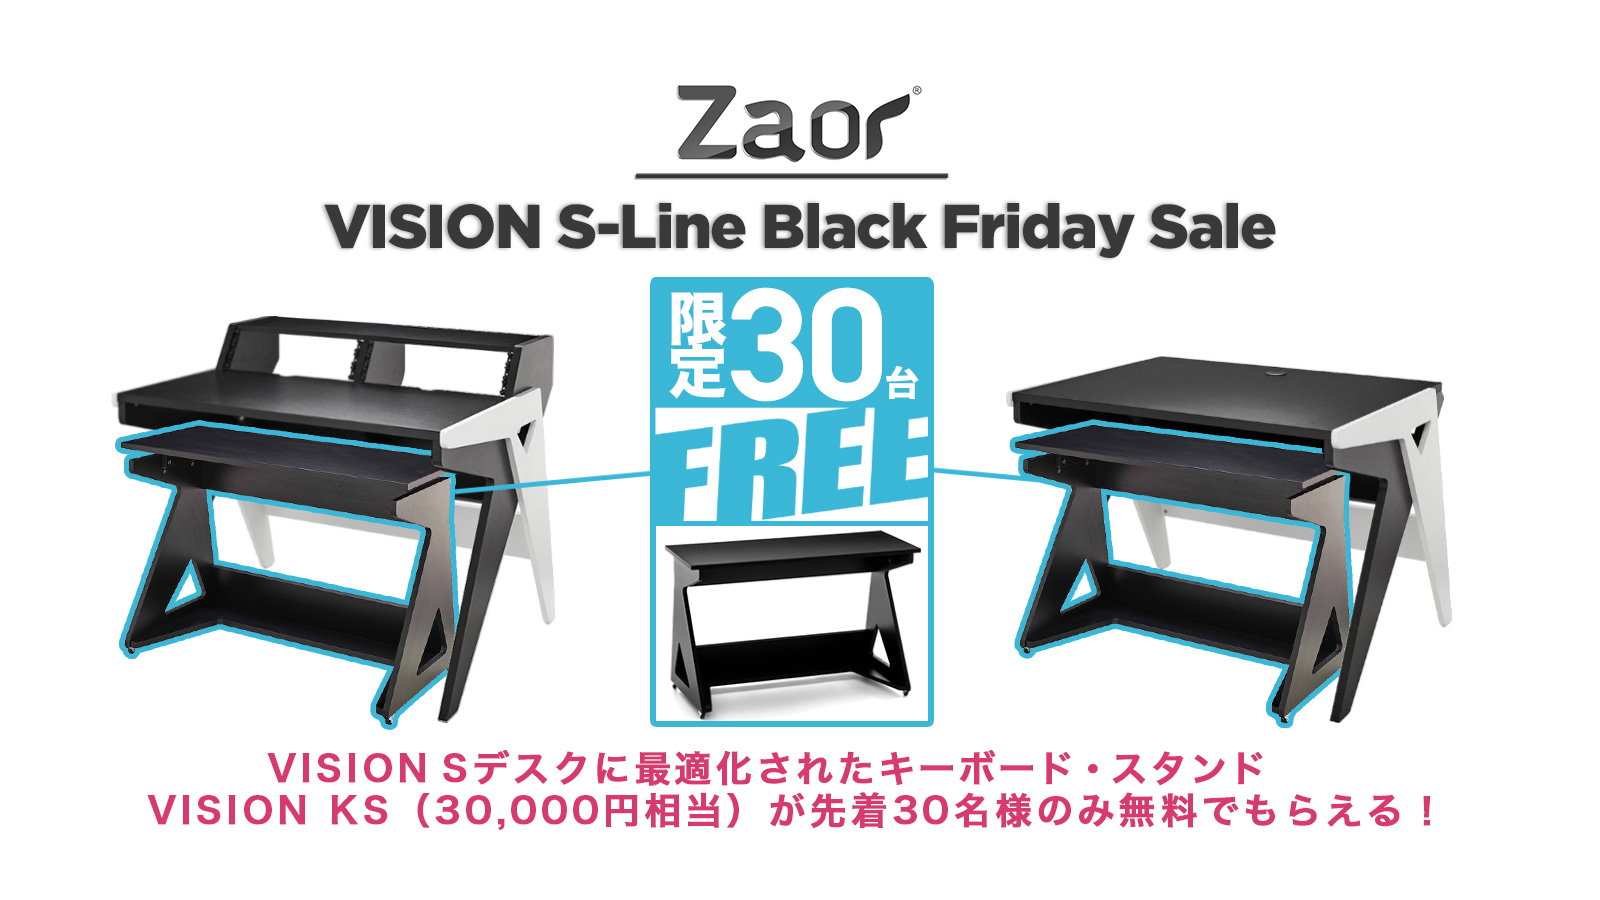 Zaor Vision S-Line Black Friday Sale!